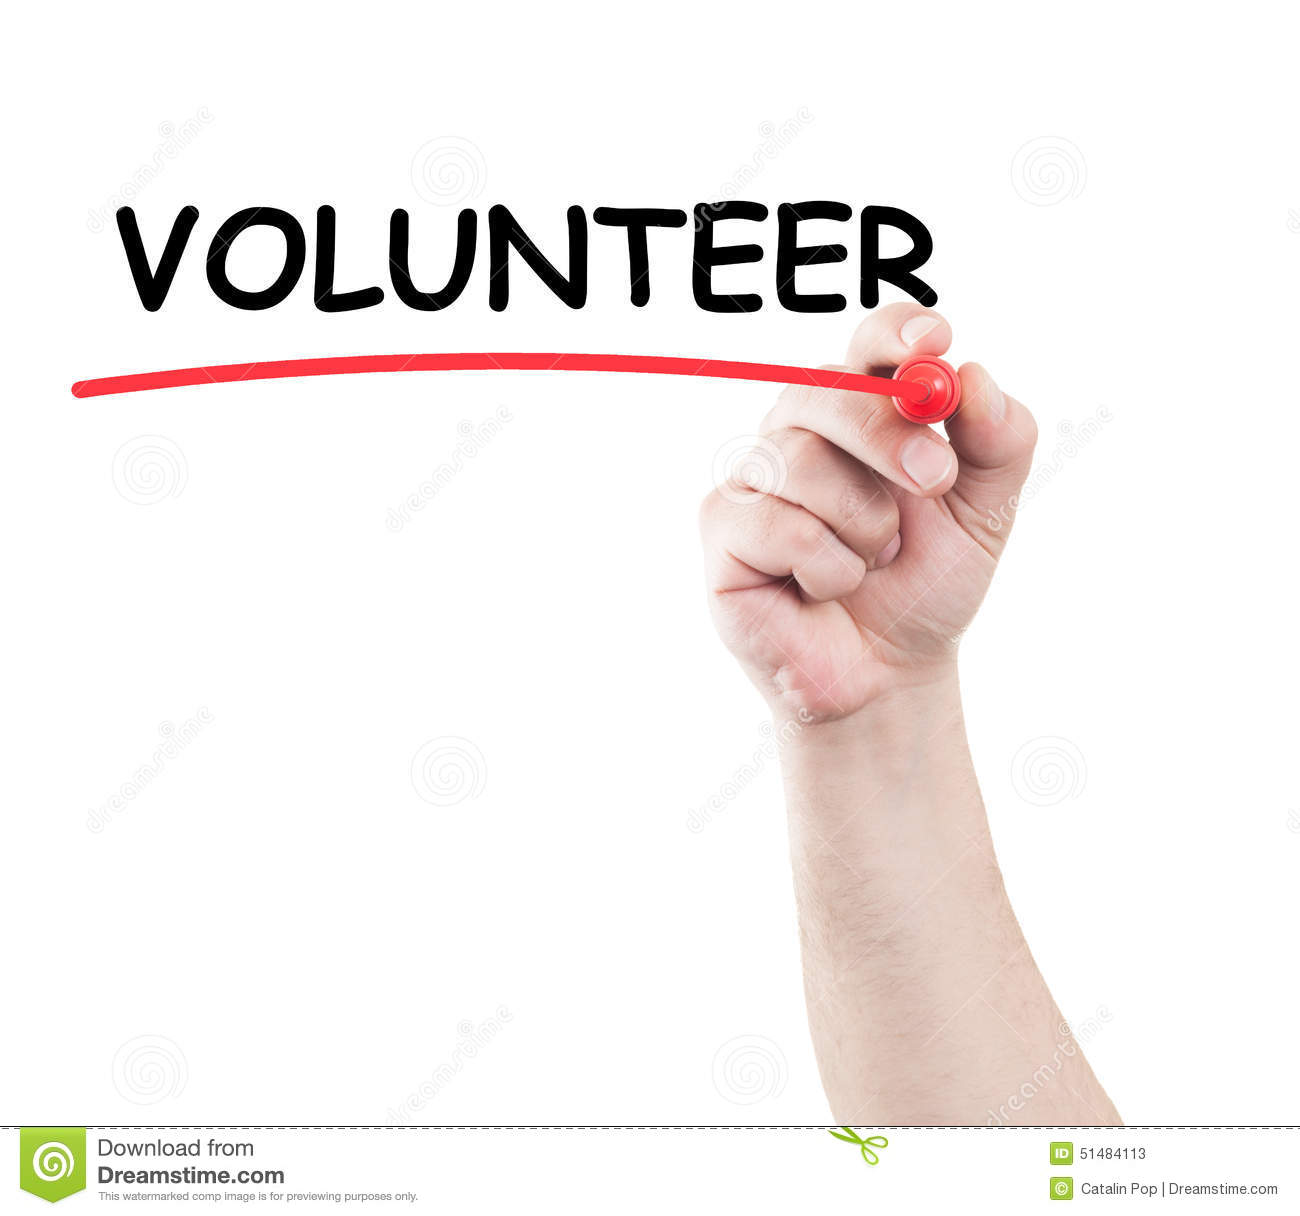 Stock Photo Volunteer Hand Writing Underline Text Transparent Wipe Board White Background Copy Space Image51484113 on Body Parts Picture Word Cards